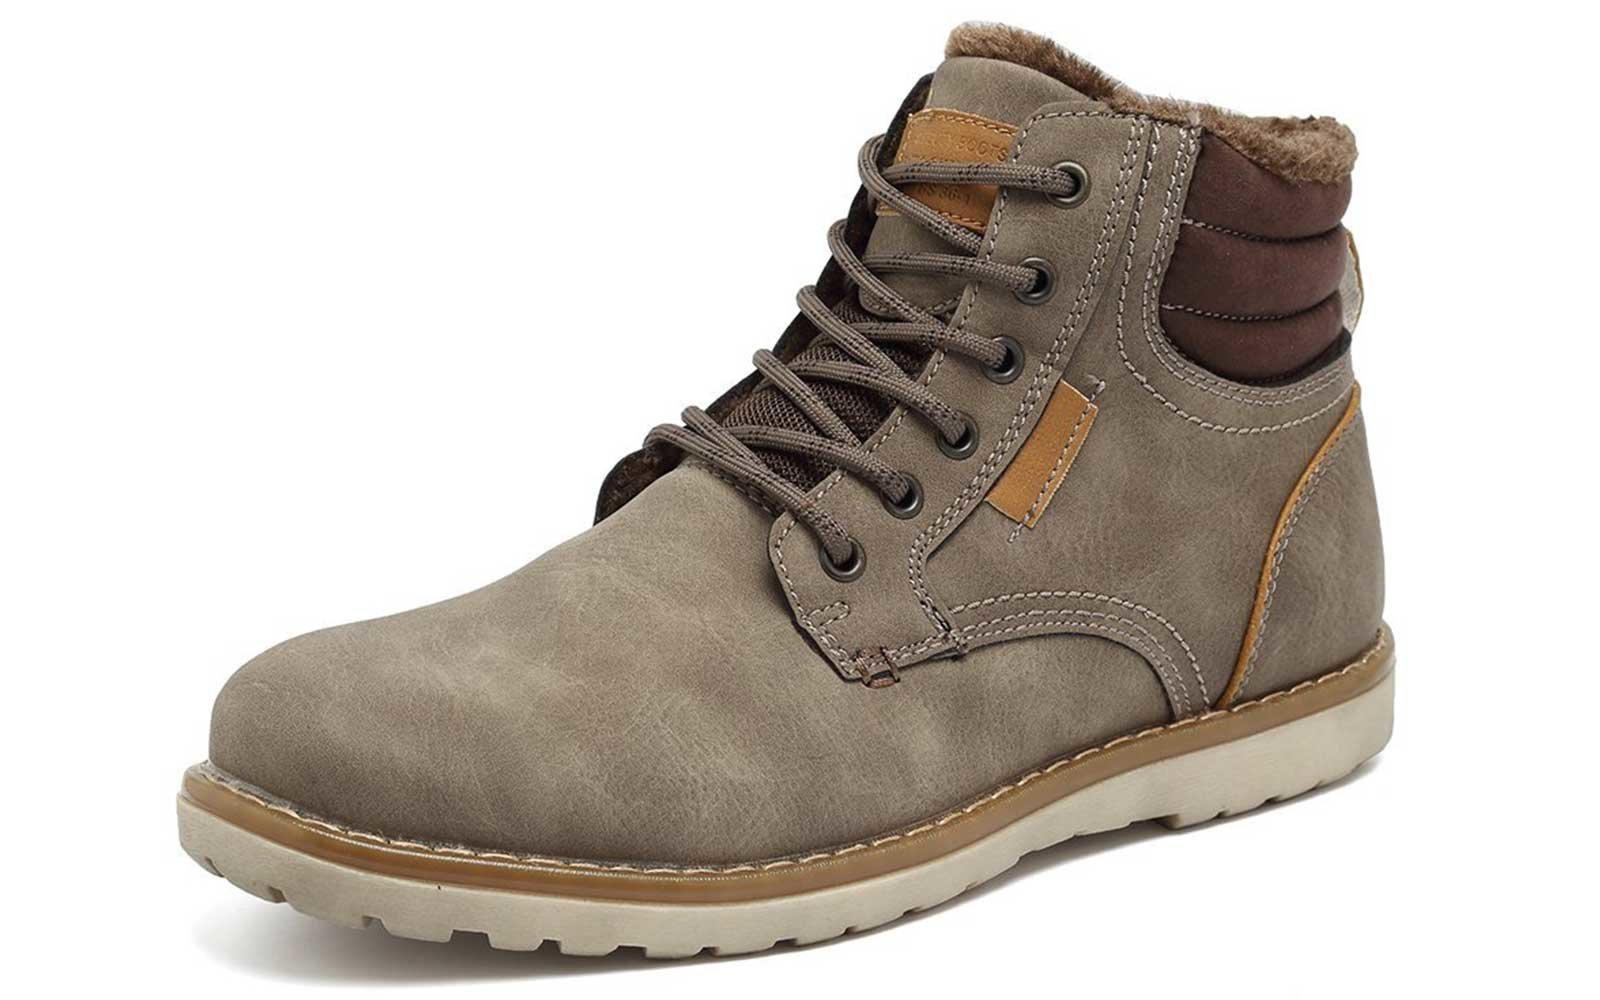 Quicksilk hiking boots for men